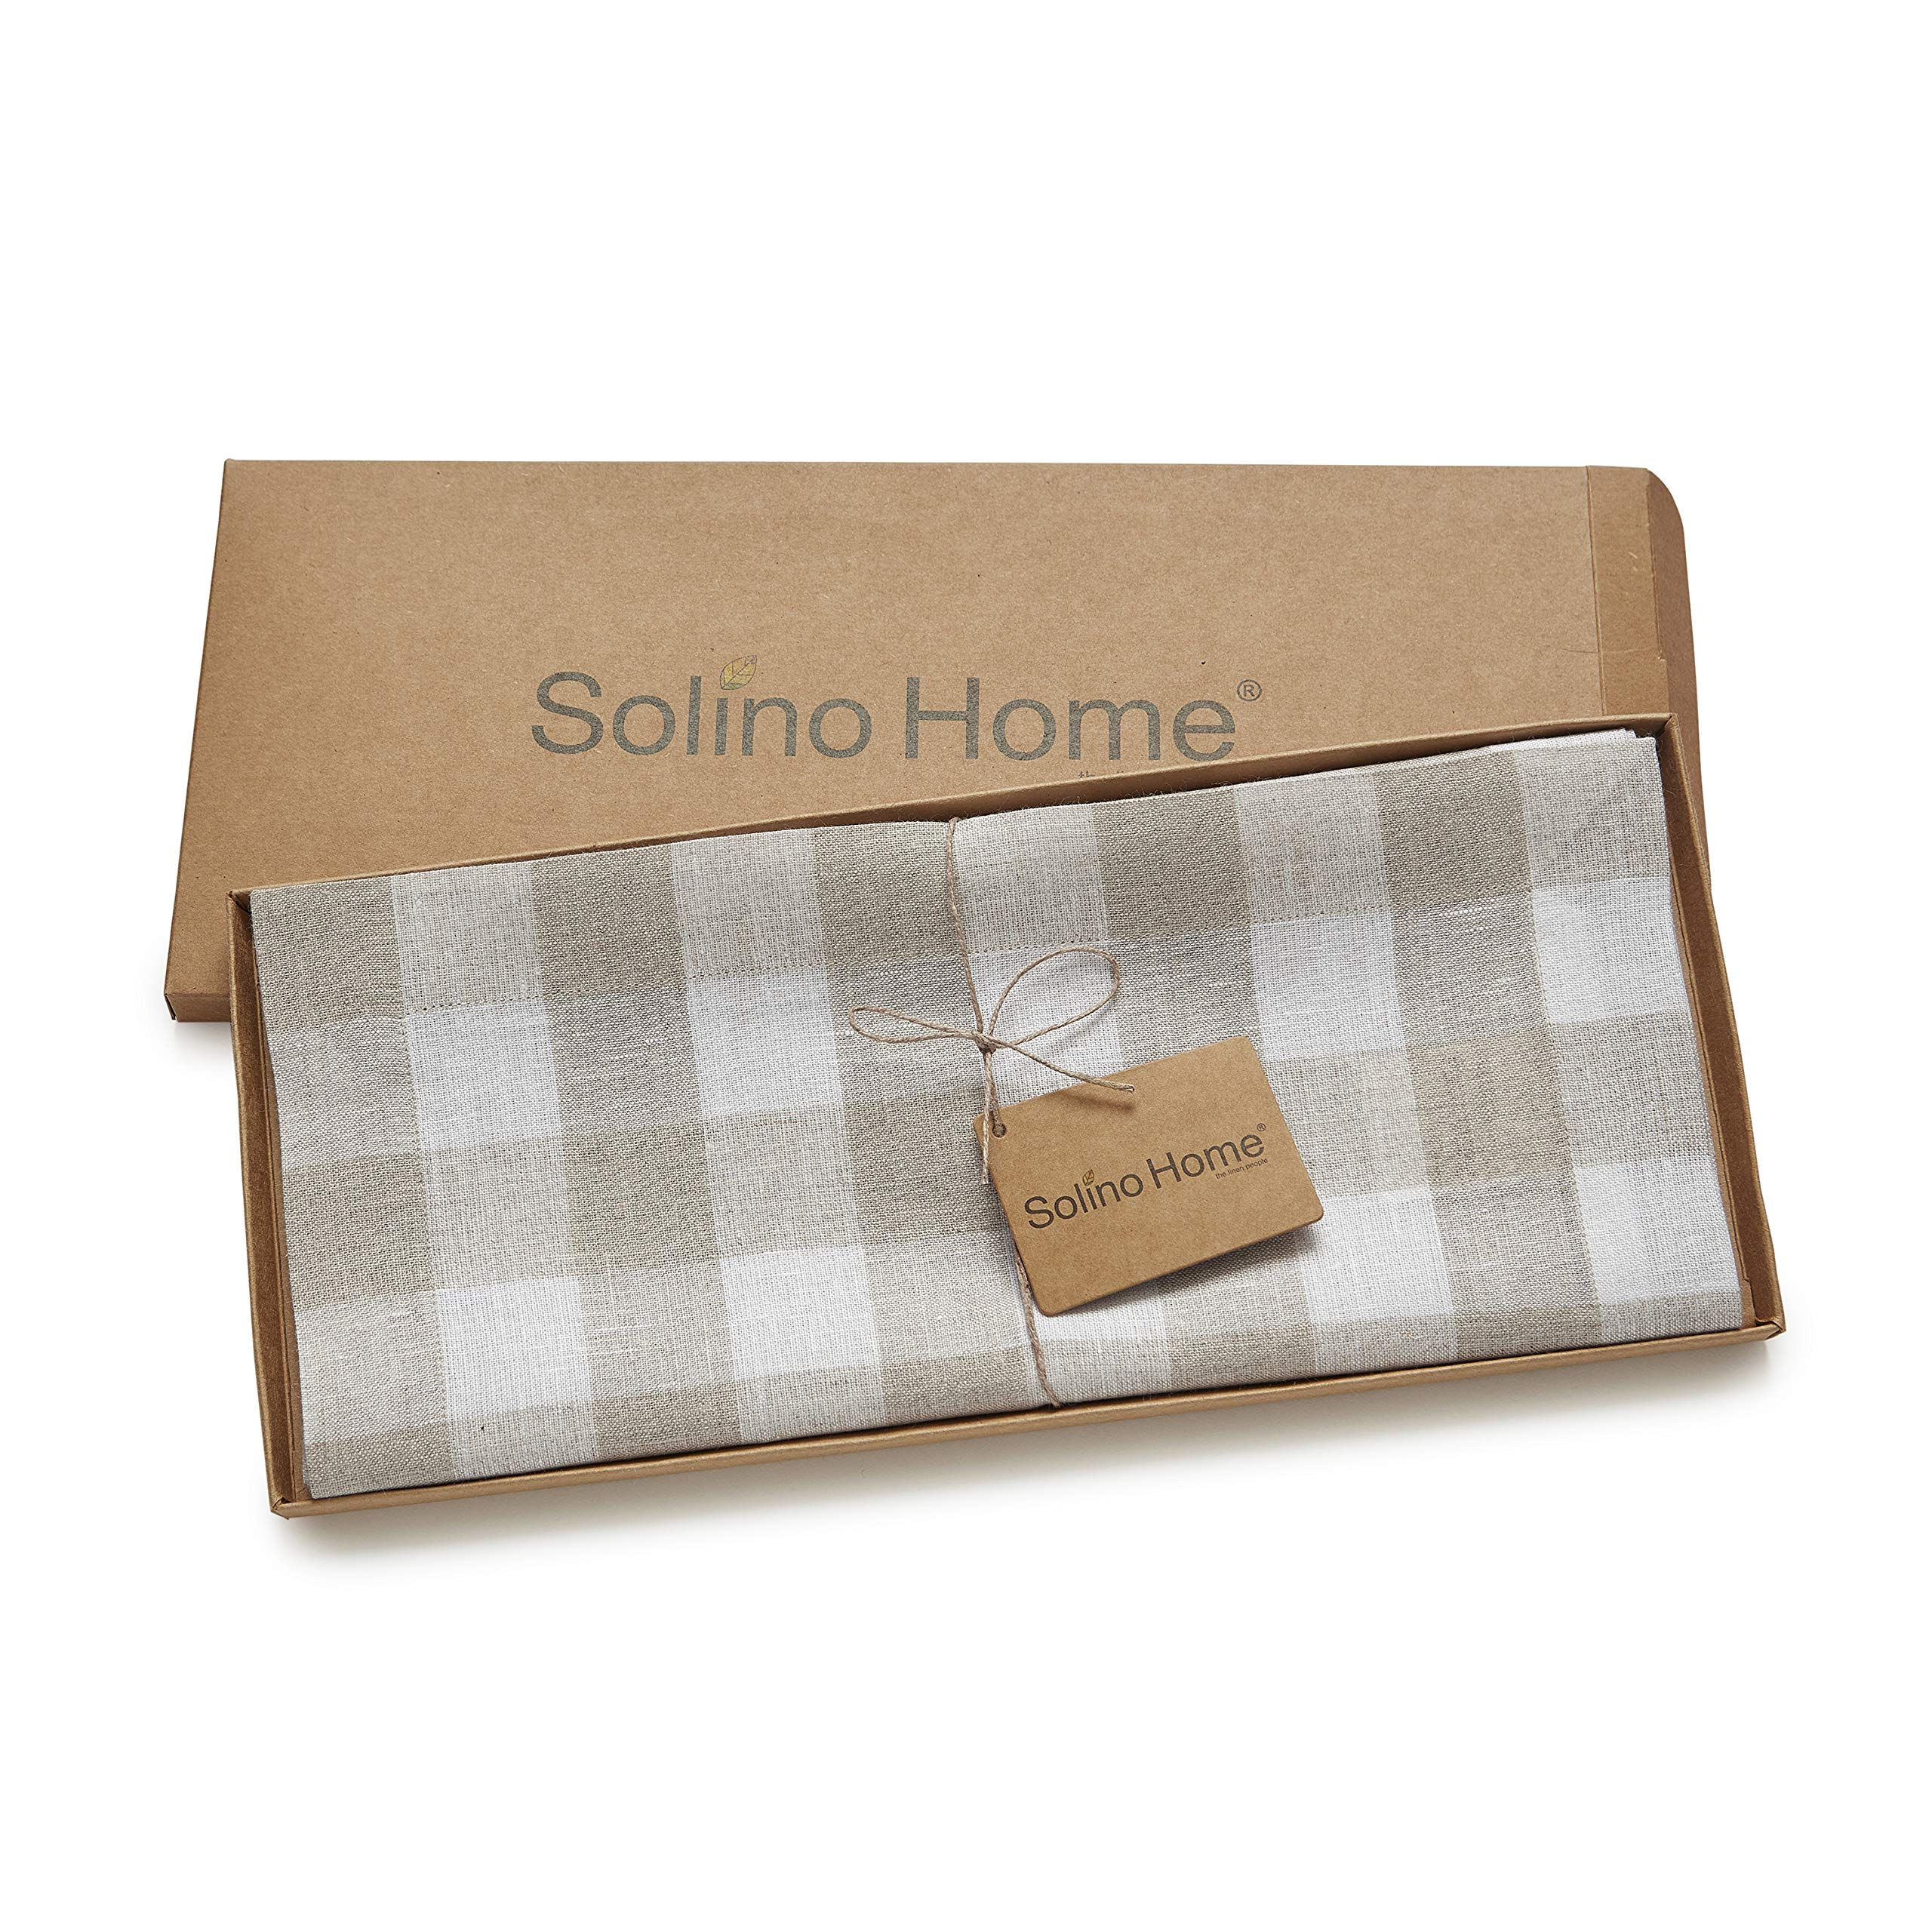 Solino Home 100% Pure Linen Checks Table Runner - Natural & White Check Table Runner - 14 x 72 Inch Runner for Dinner, Indoor and Outdoor Use by Solino Home (Image #5)